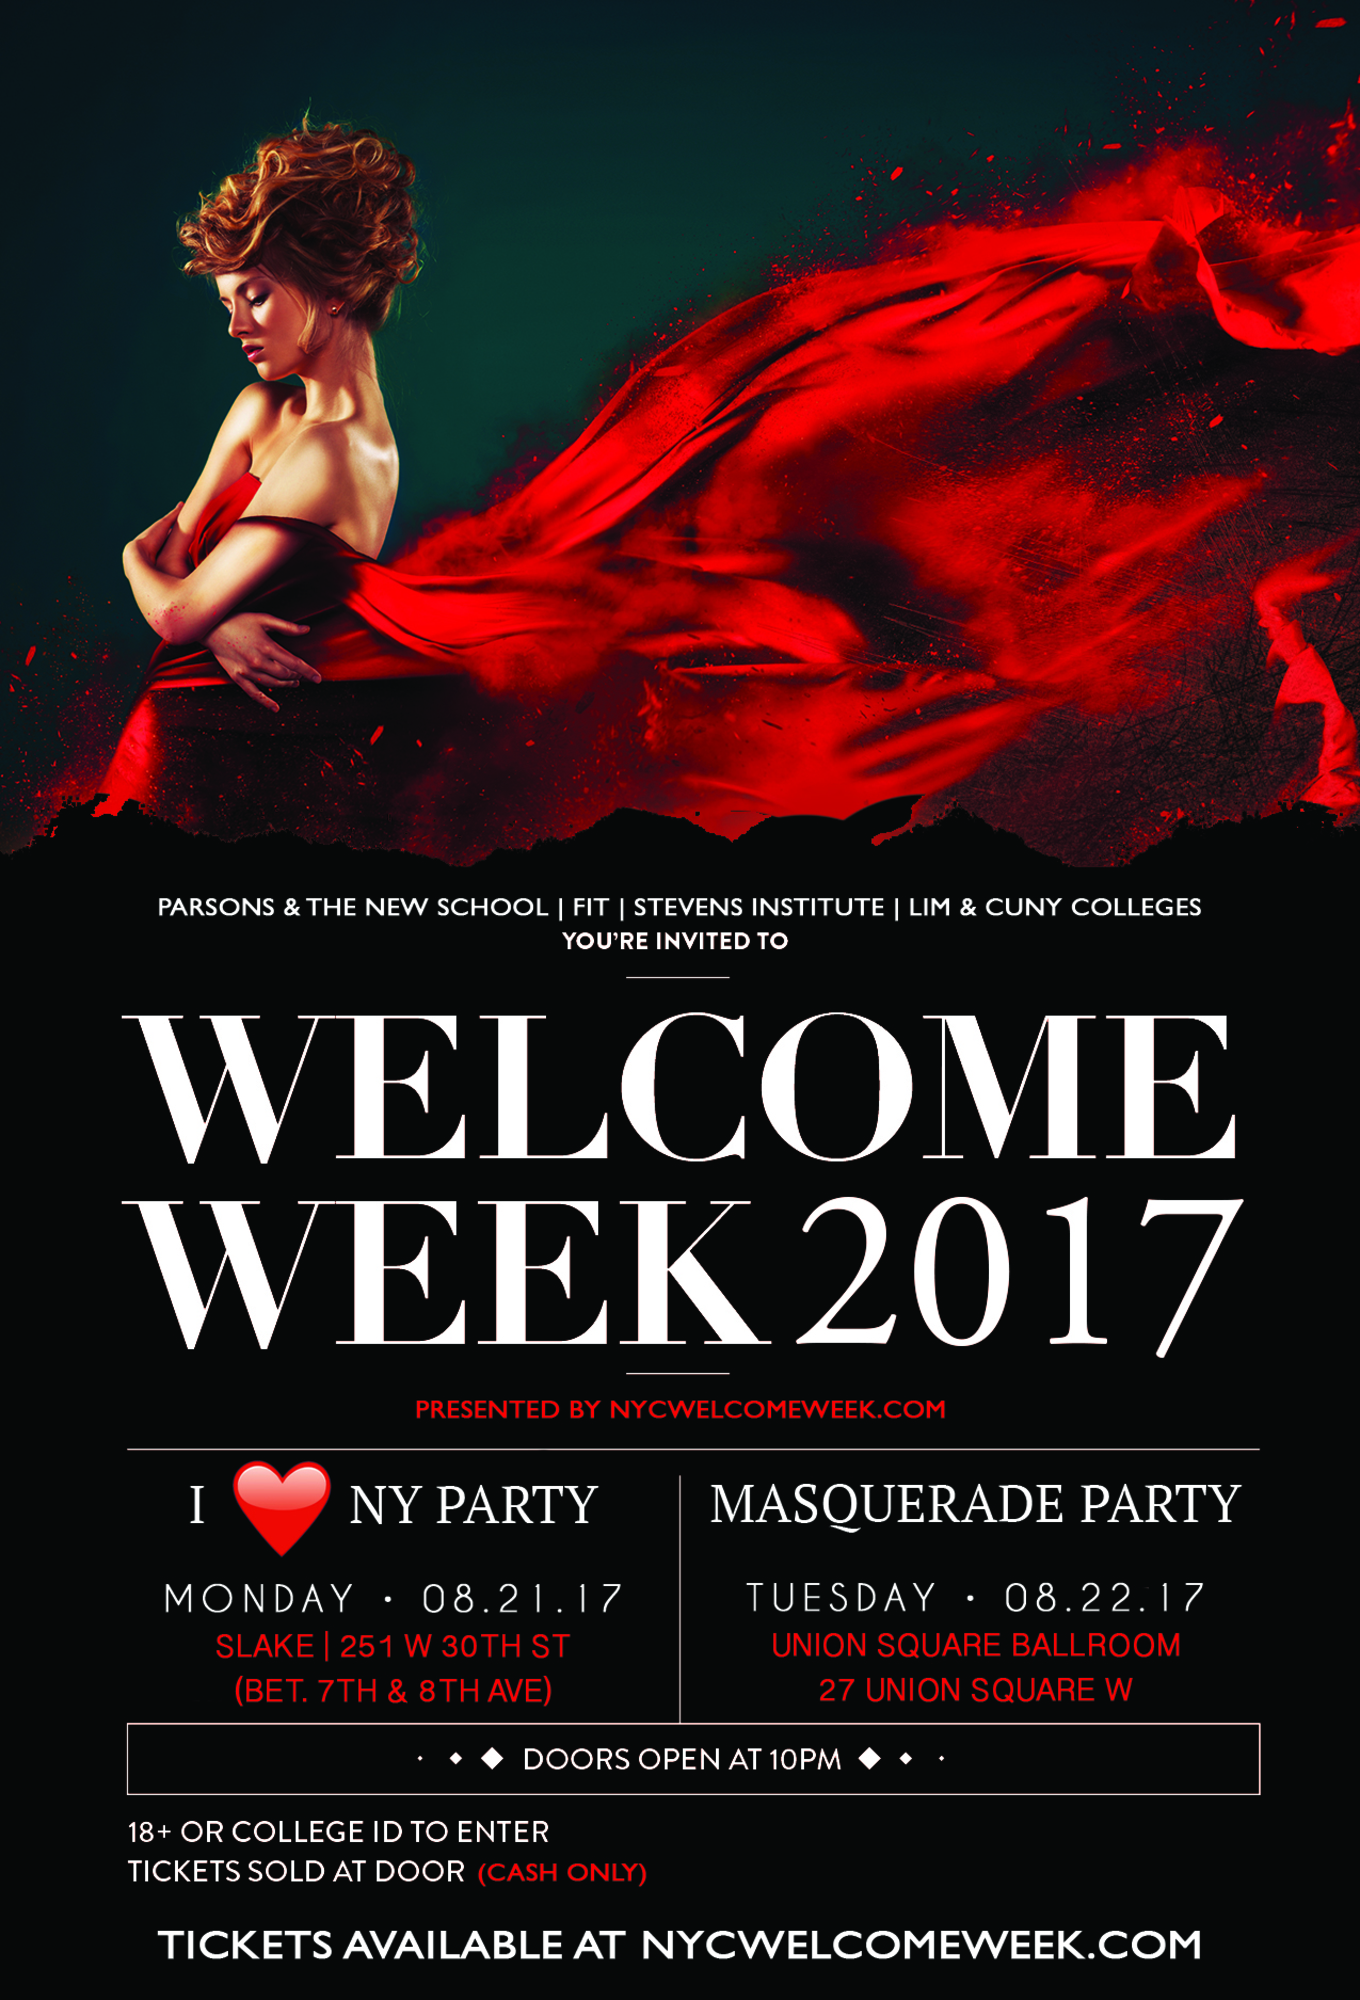 Masquerade Party Union Square Ballroom Pre Welcome Week